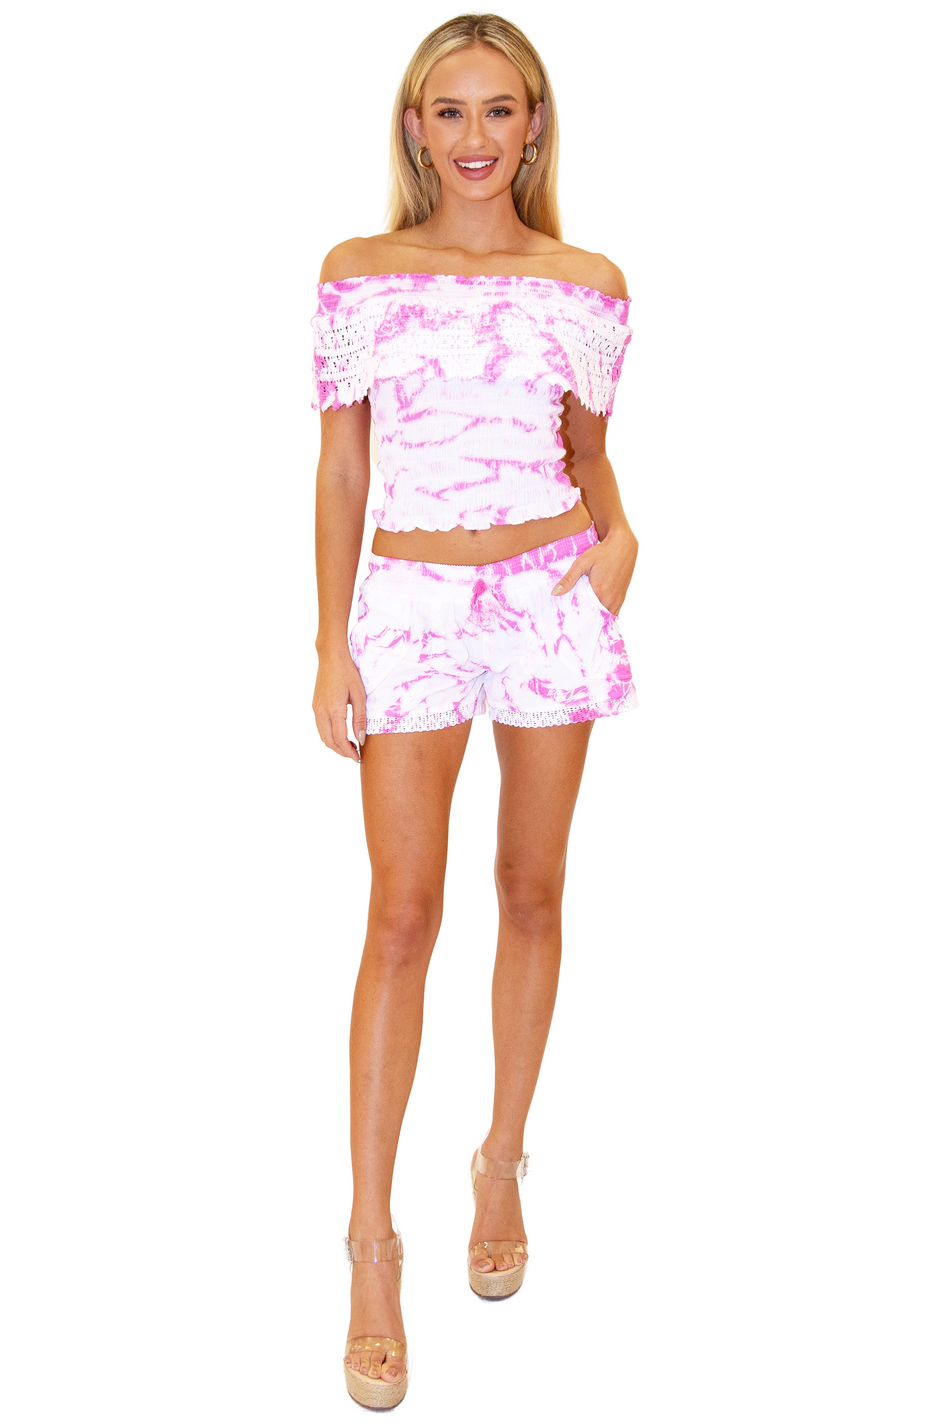 NW1029 - Tie Dye Pink Cotton Shorts